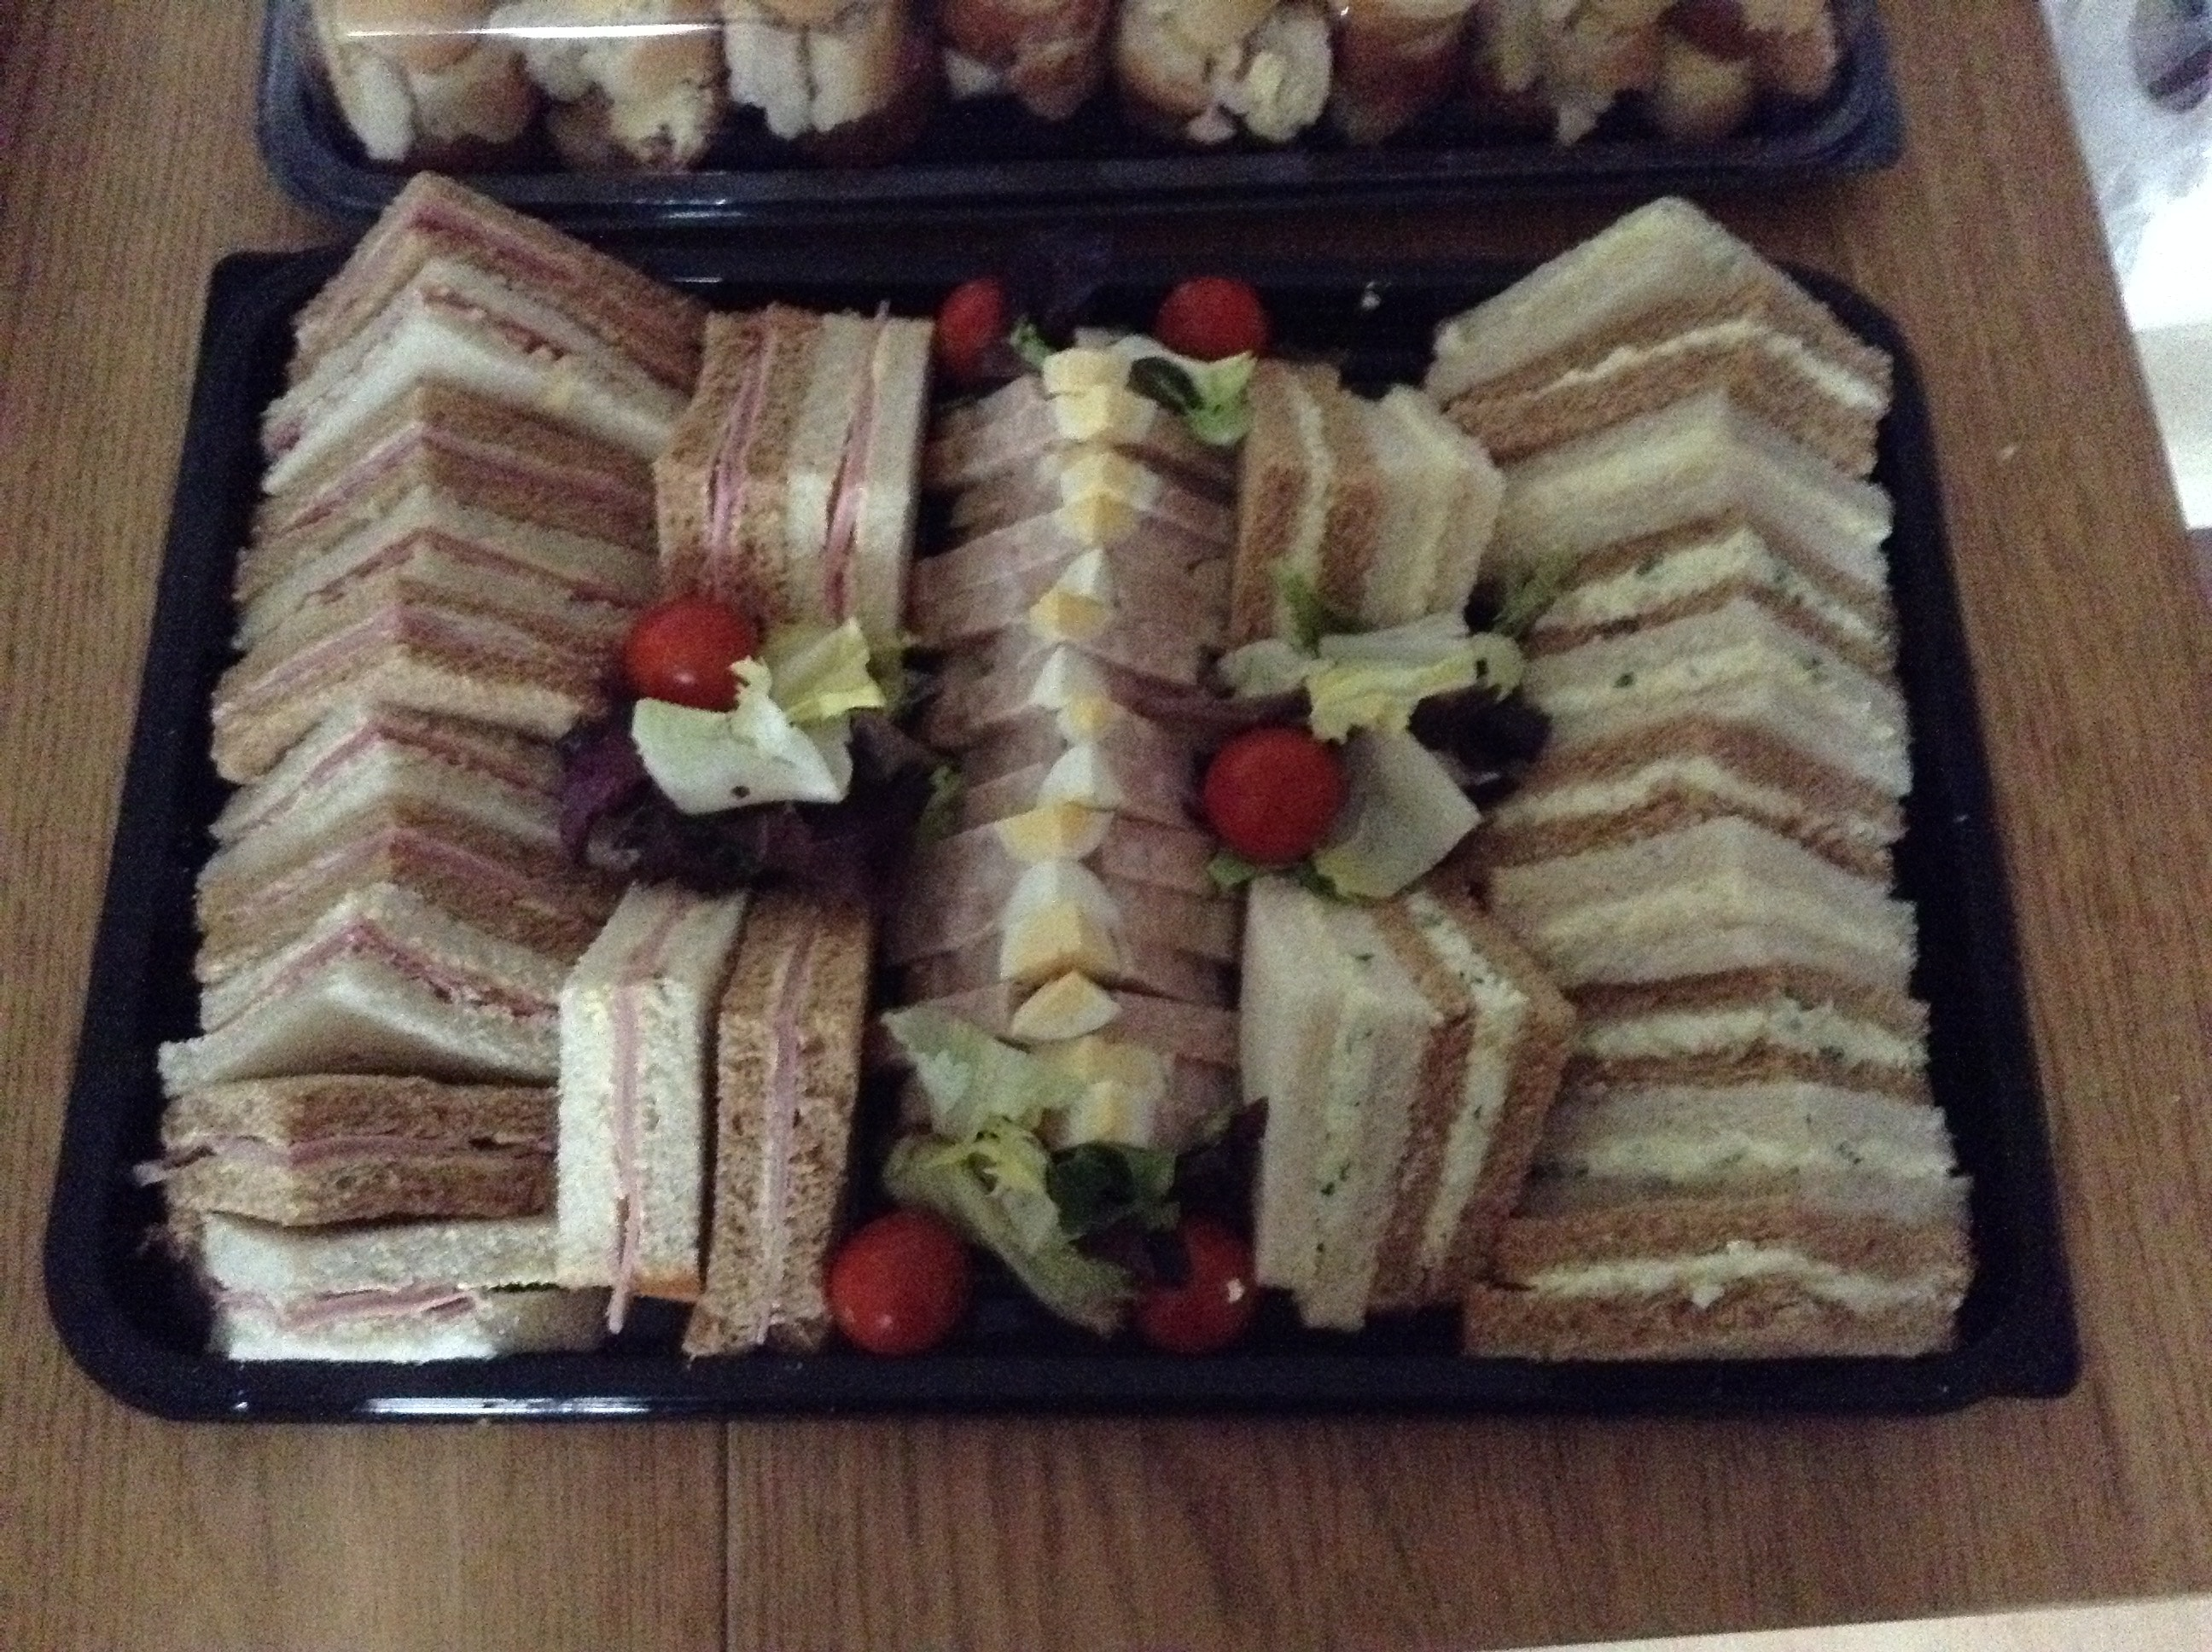 DC Catering Freshly made sandwiches